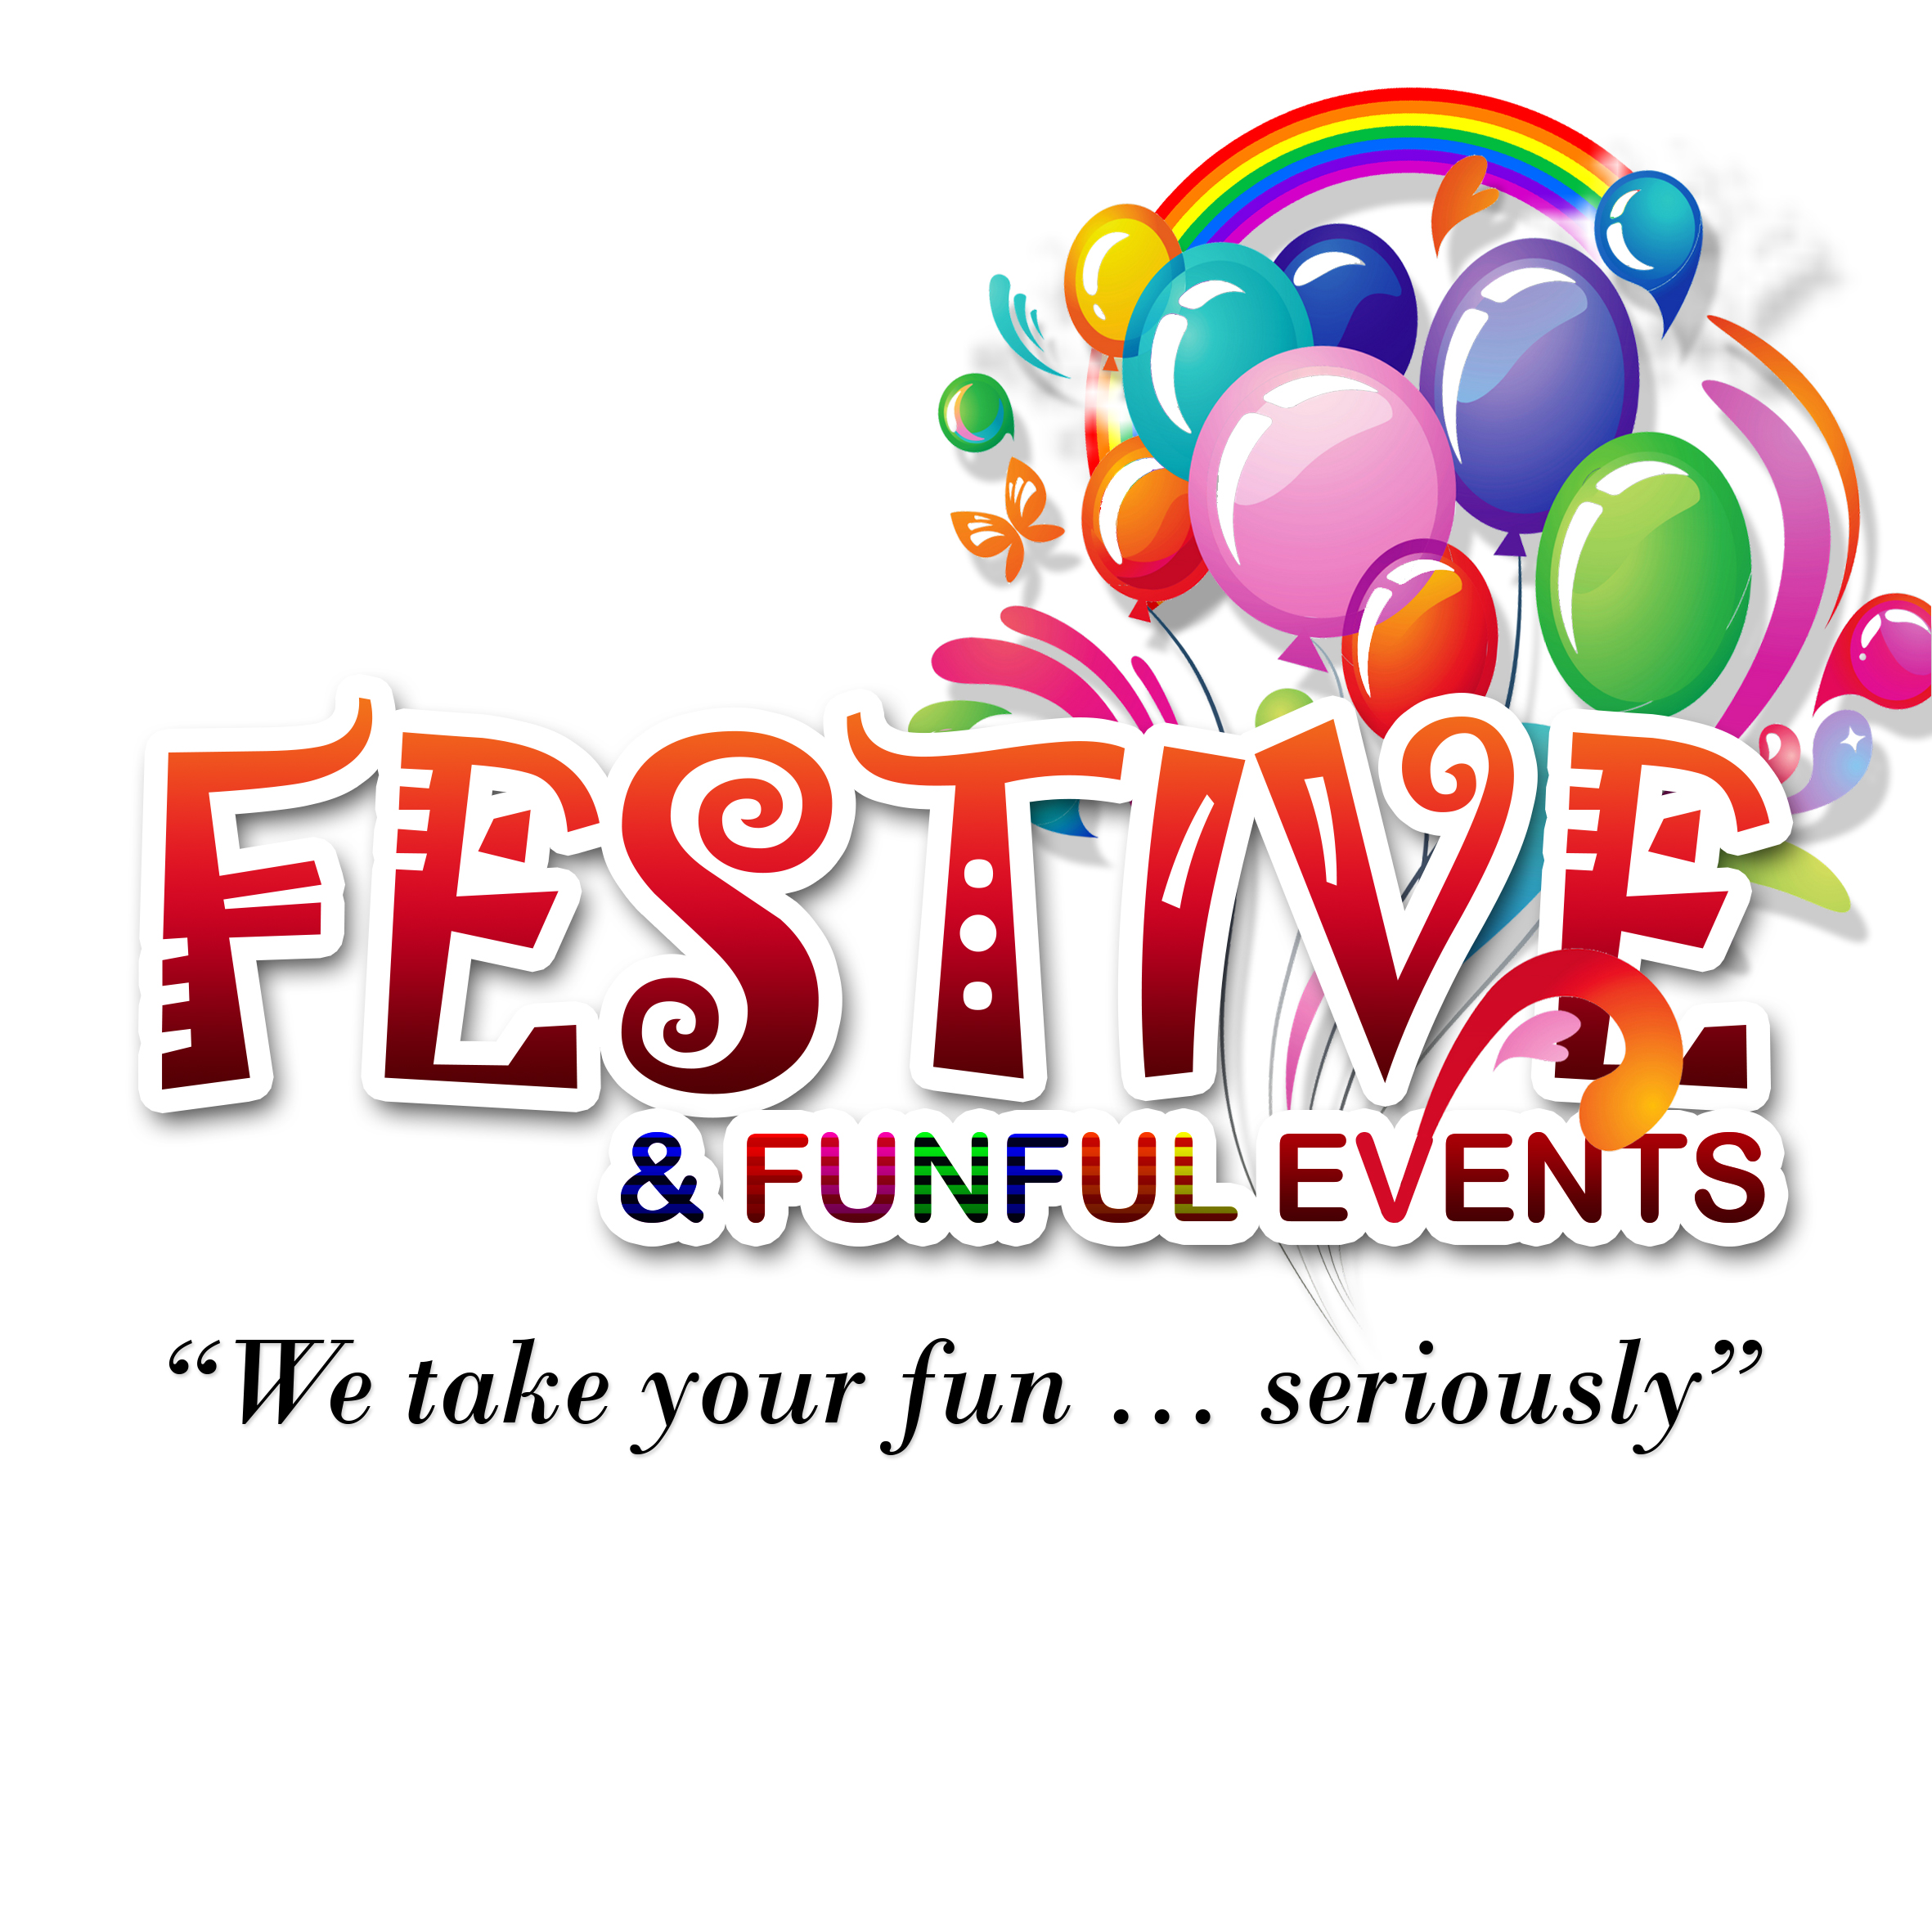 Festive & Funful Events